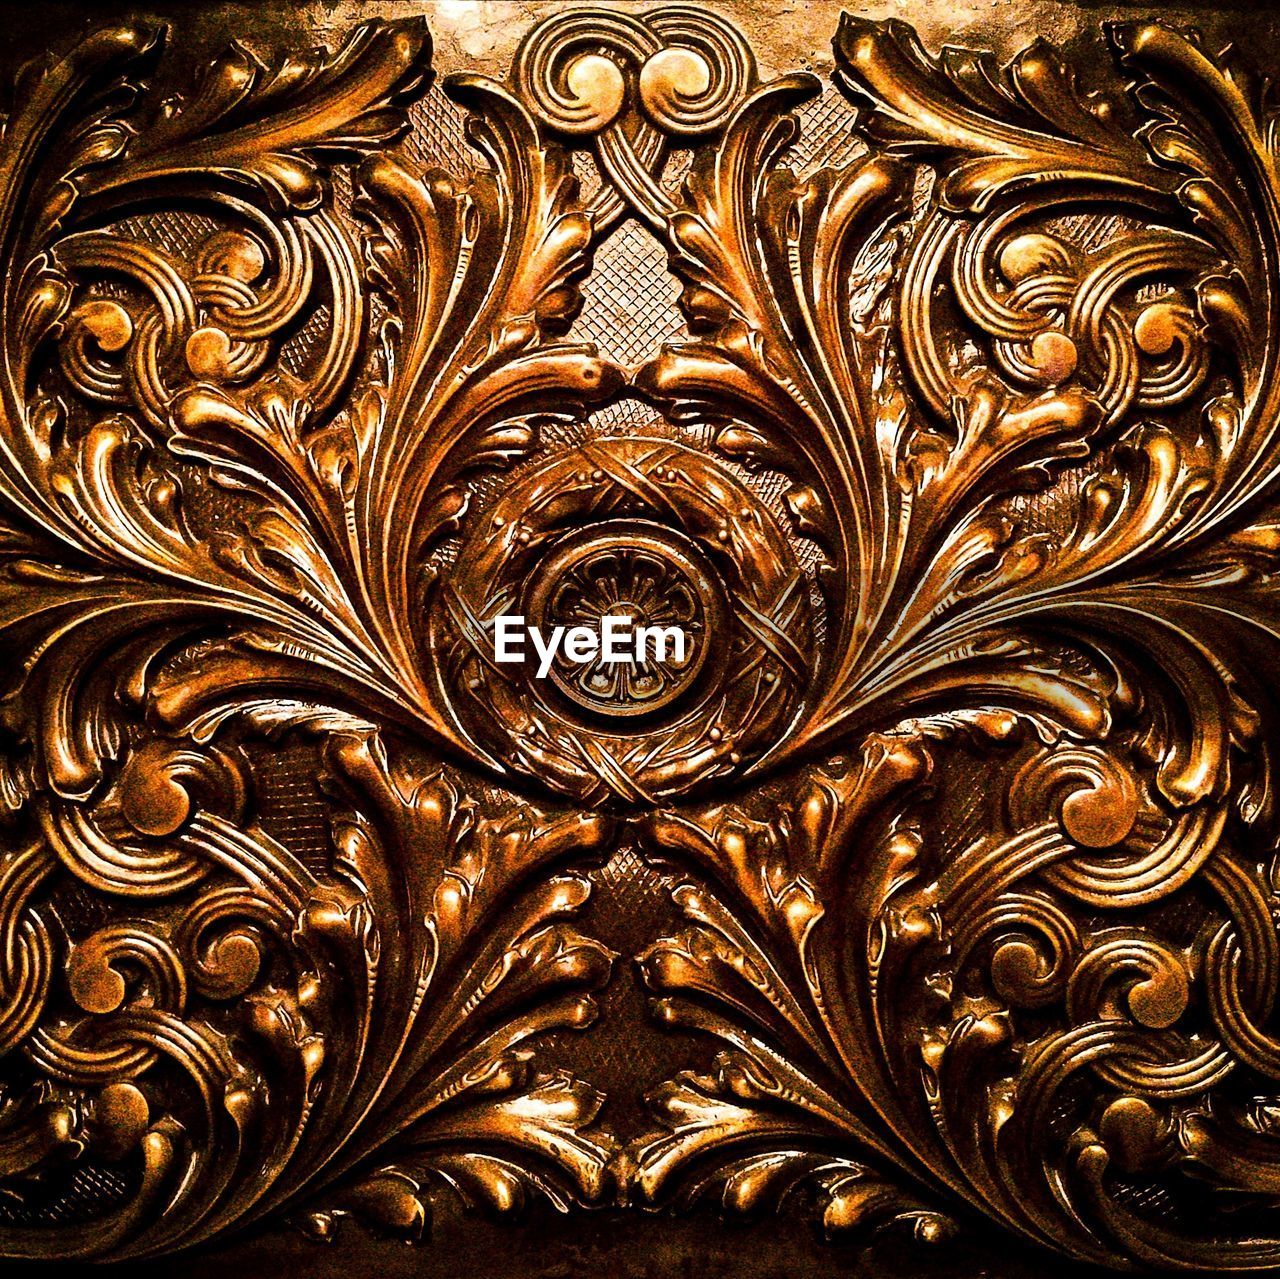 gold colored, pattern, art and craft, full frame, design, backgrounds, no people, creativity, gold, ornate, indoors, close-up, decoration, craft, shape, luxury, textured, wealth, gilded, architecture, floral pattern, carving